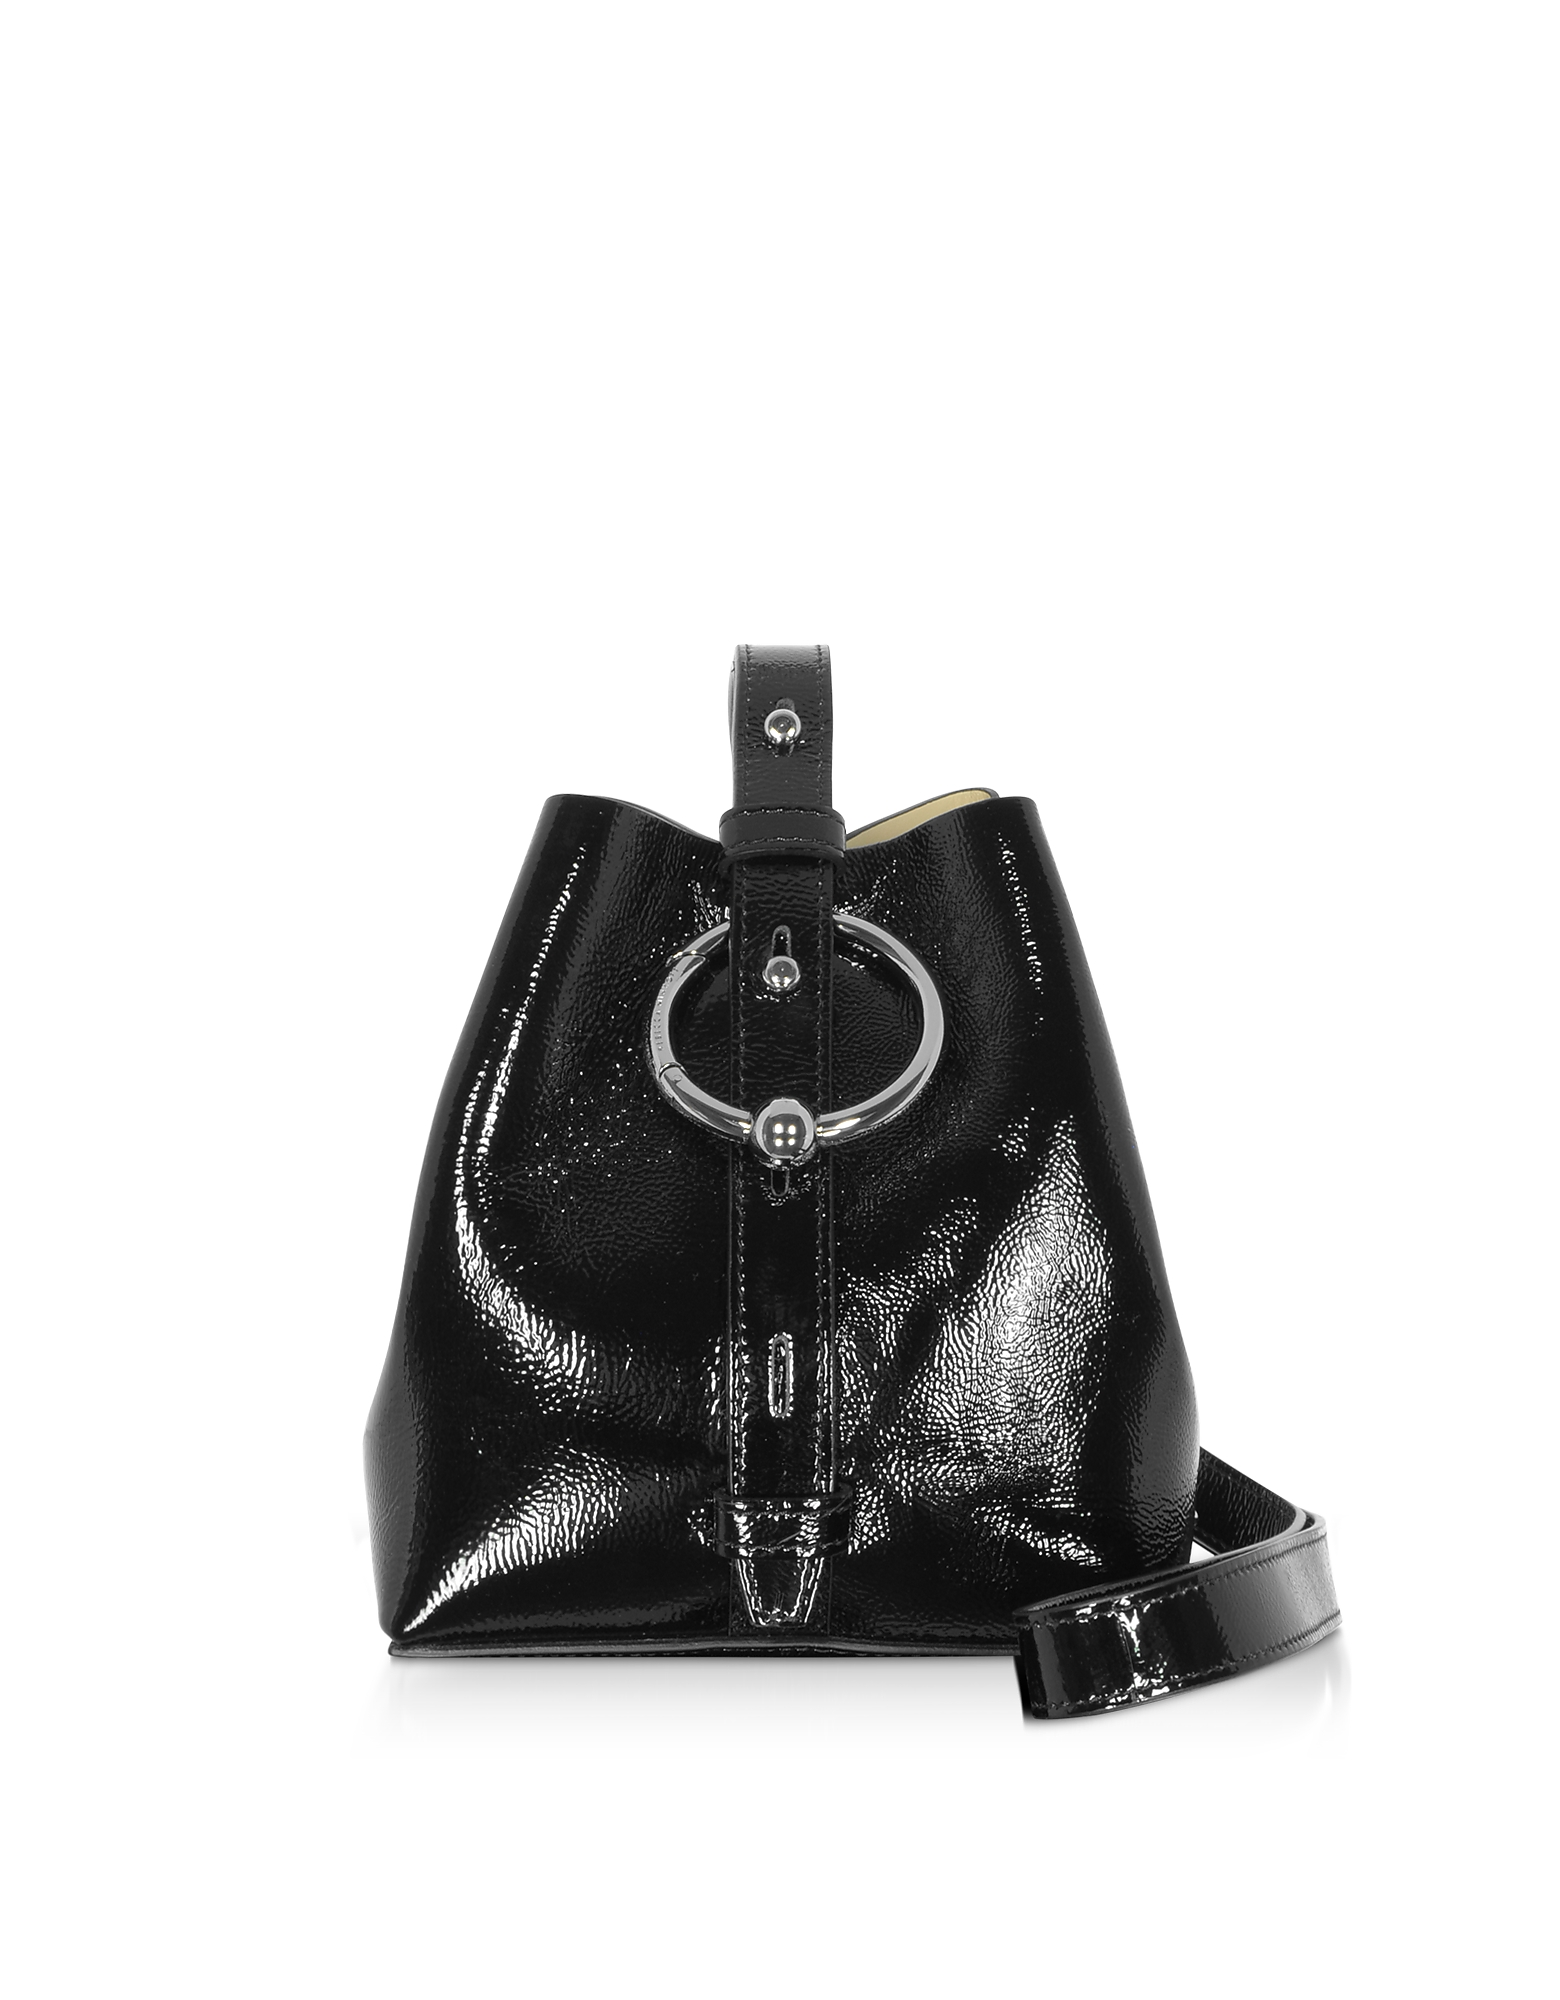 Rebecca Minkoff Designer Handbags, Naplack Leather Mini Kate Bucket Bag